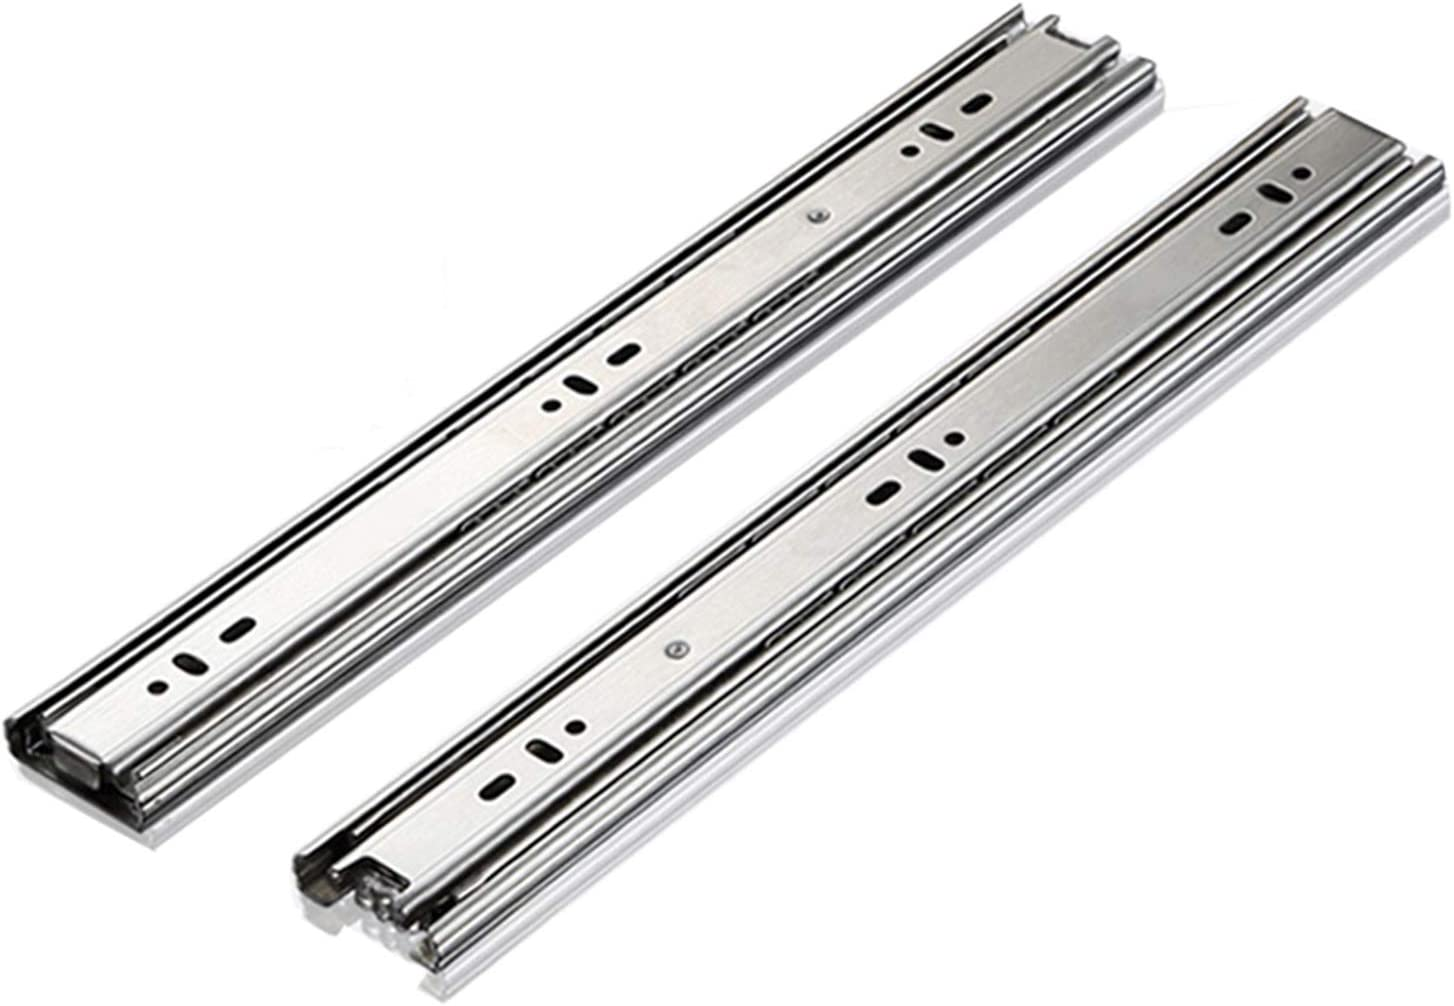 YYQ 1-Pair mart Runners Slides for Drawer 200mm 250mm Side Mail order 8in Mount